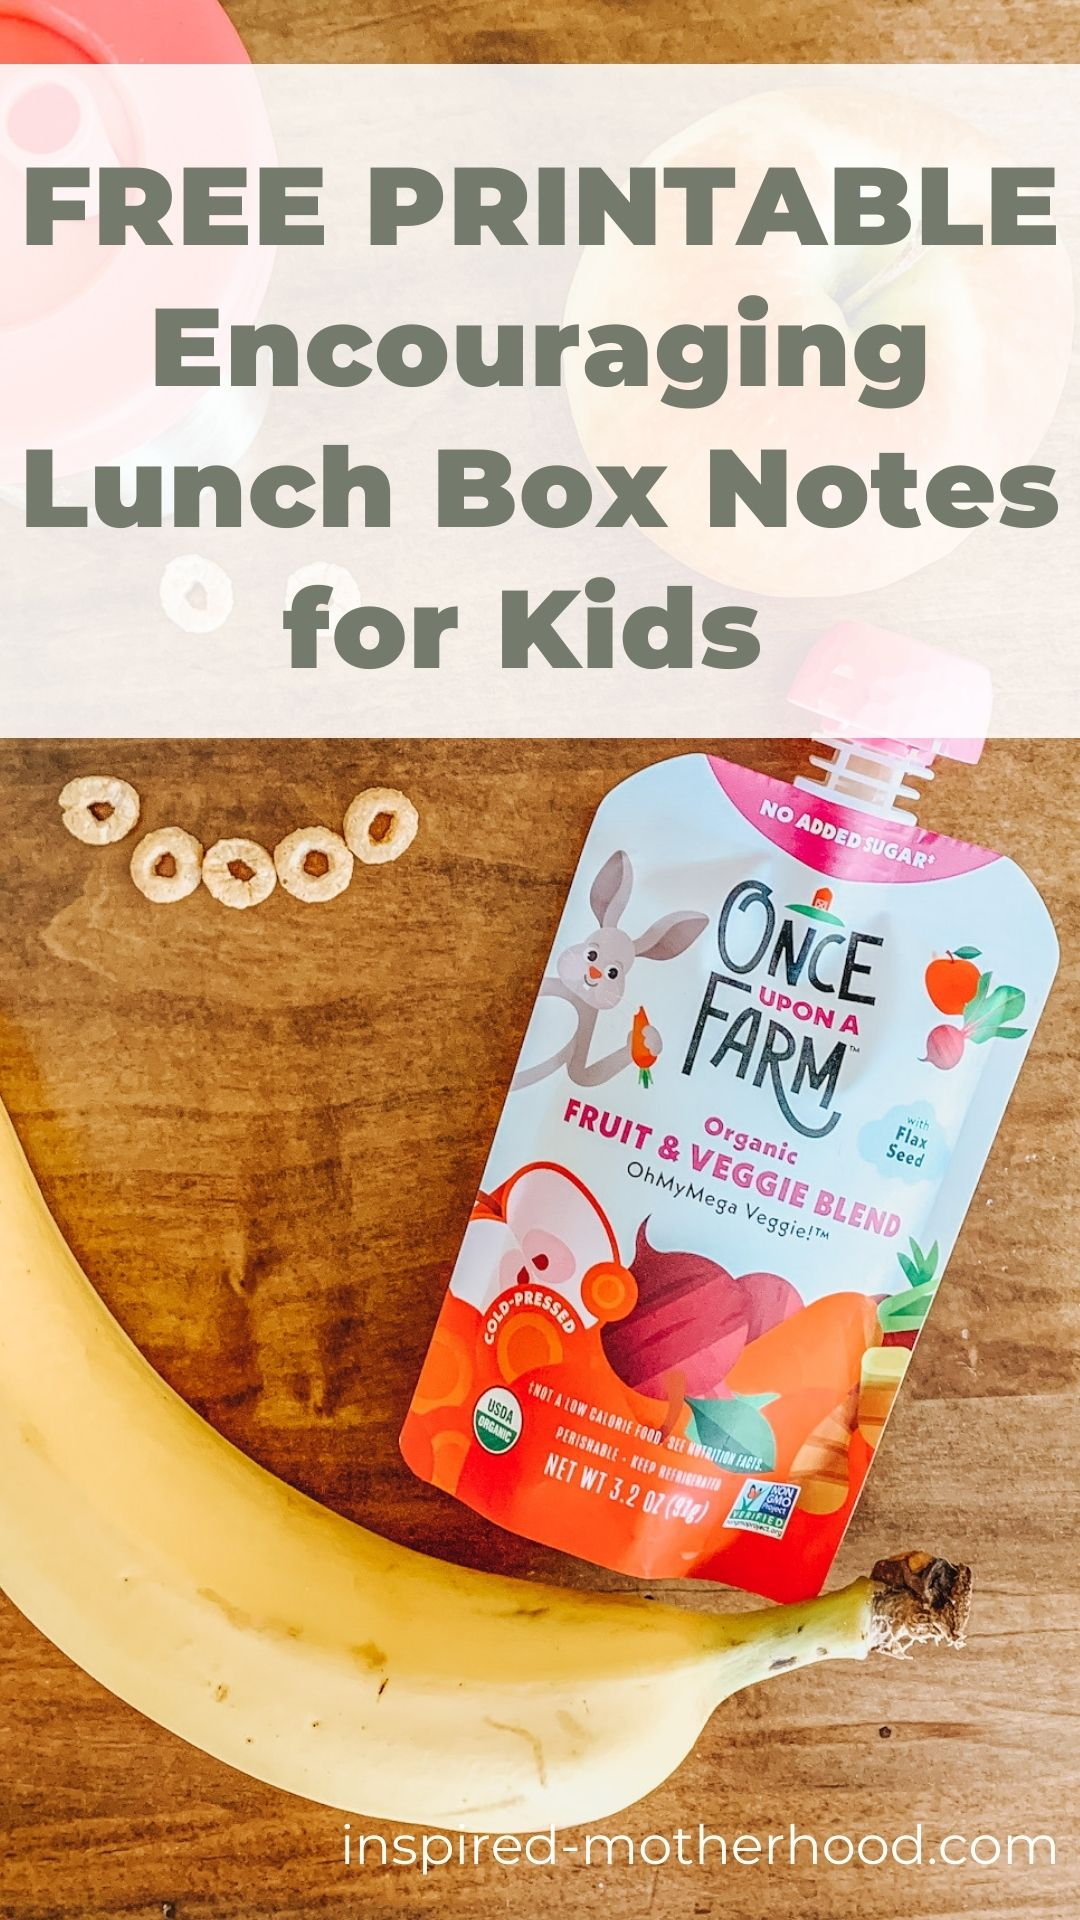 Not sure what to write on your child's lunch box note? Here are 12 free printables to cut out and stick in their lunch box each day at school.